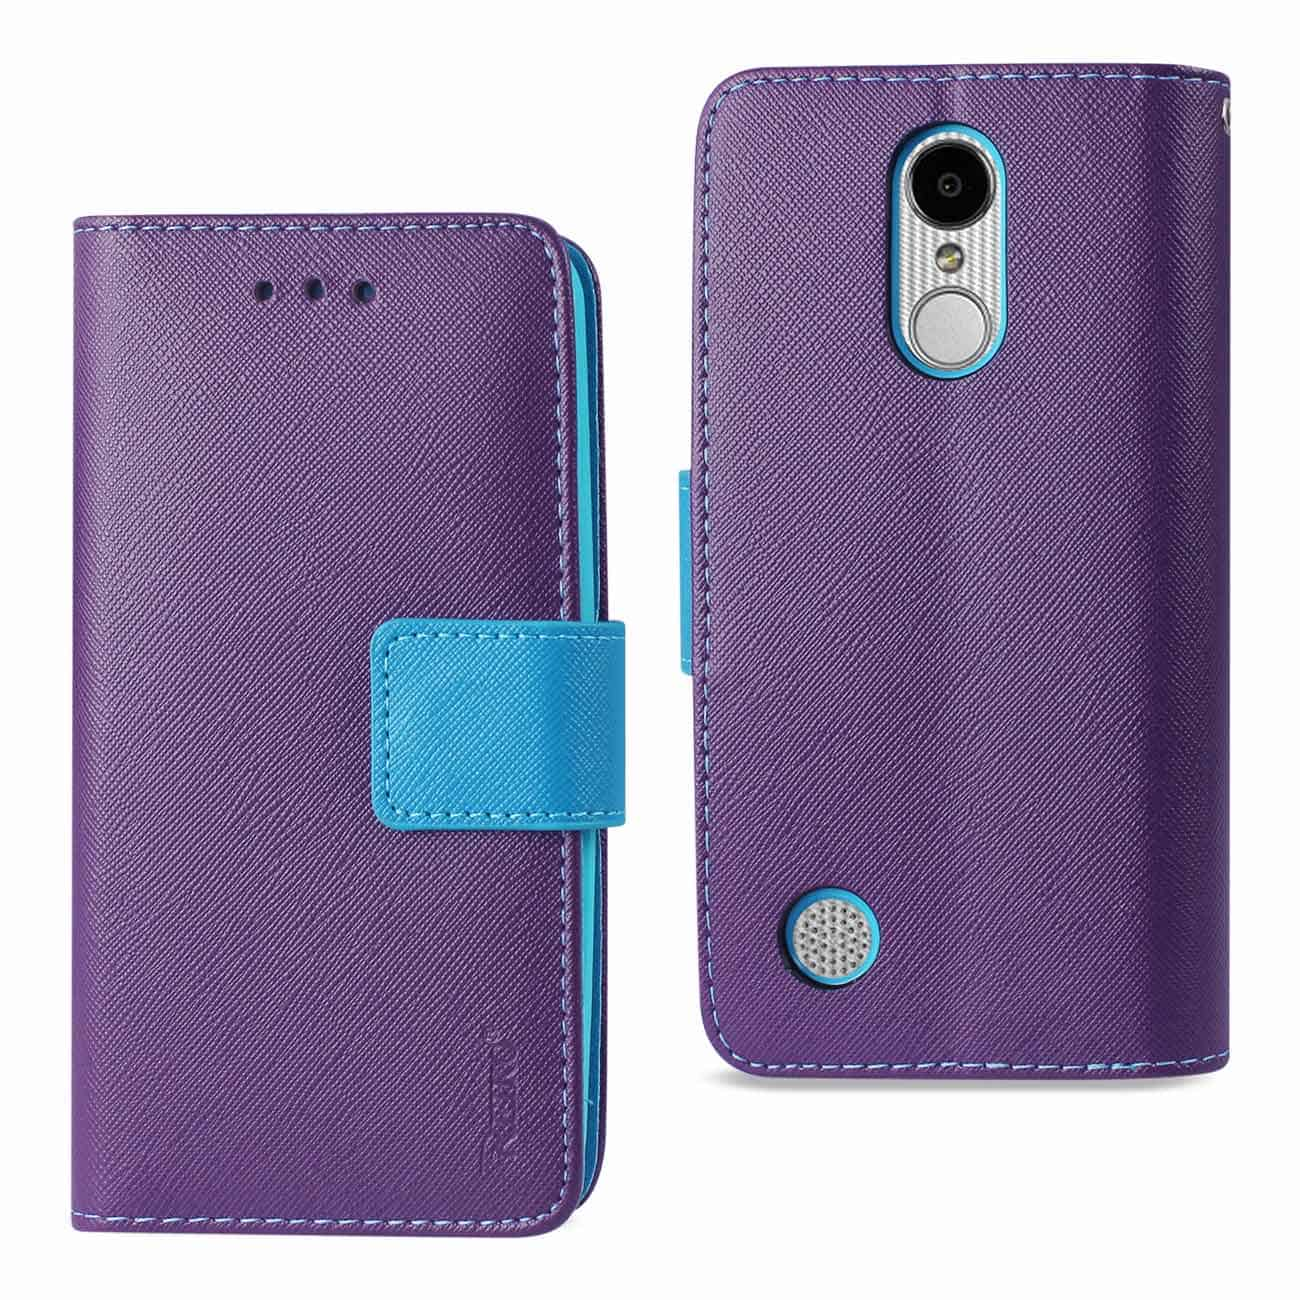 LG ARISTO/ FORTUNE/ PHOENIX 3 PLUS 3-IN-1 WALLET CASE IN PURPLE